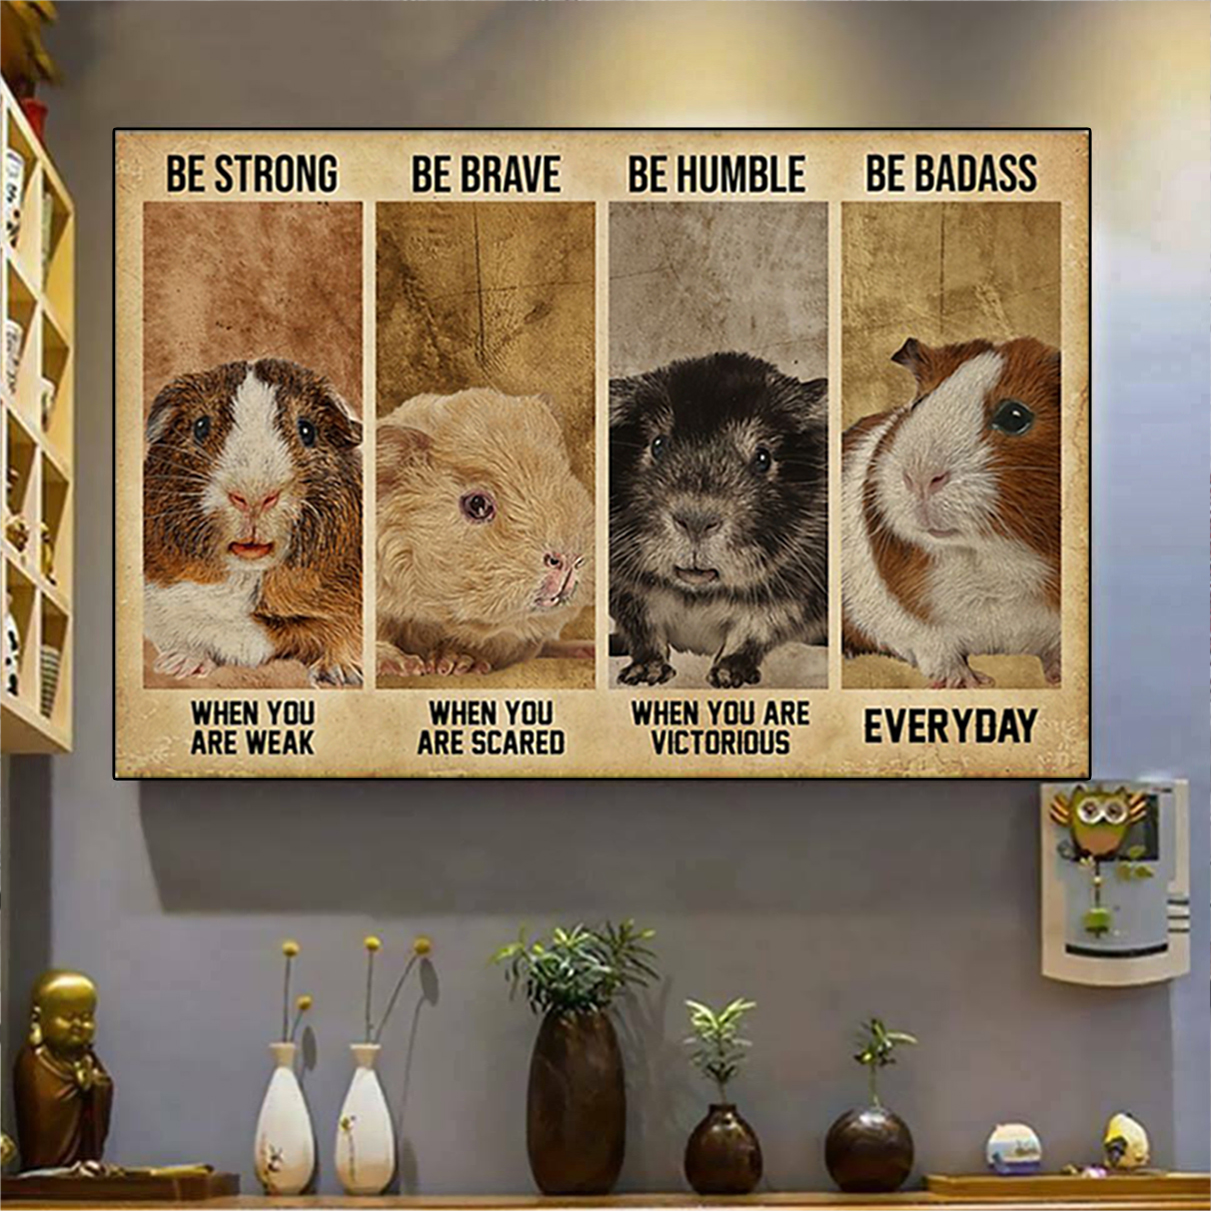 Guinea pig be strong be brave be humble be badass poster A3